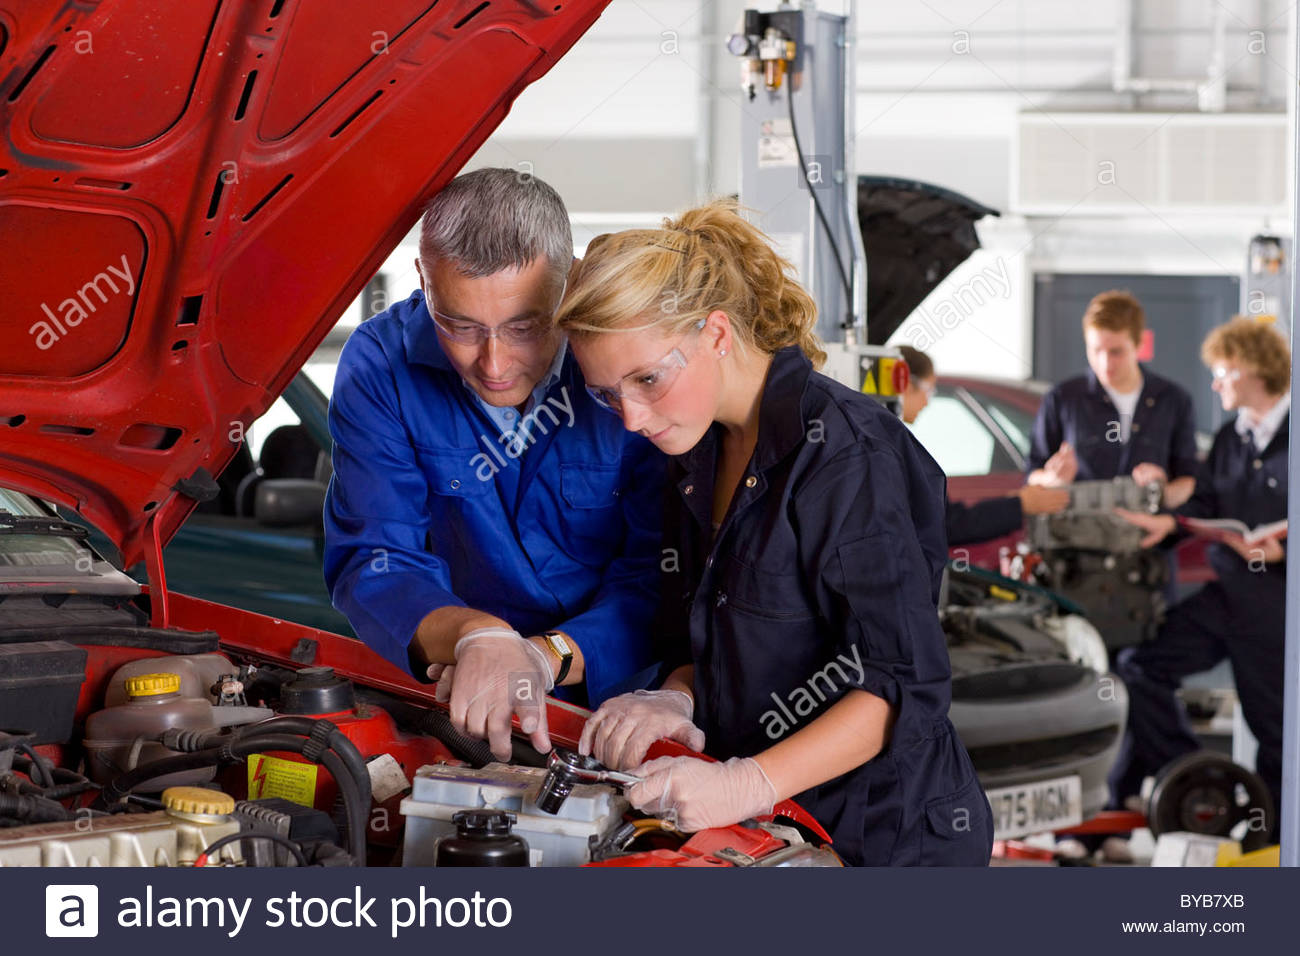 Teacher Helping Student Repair Car In Automotive